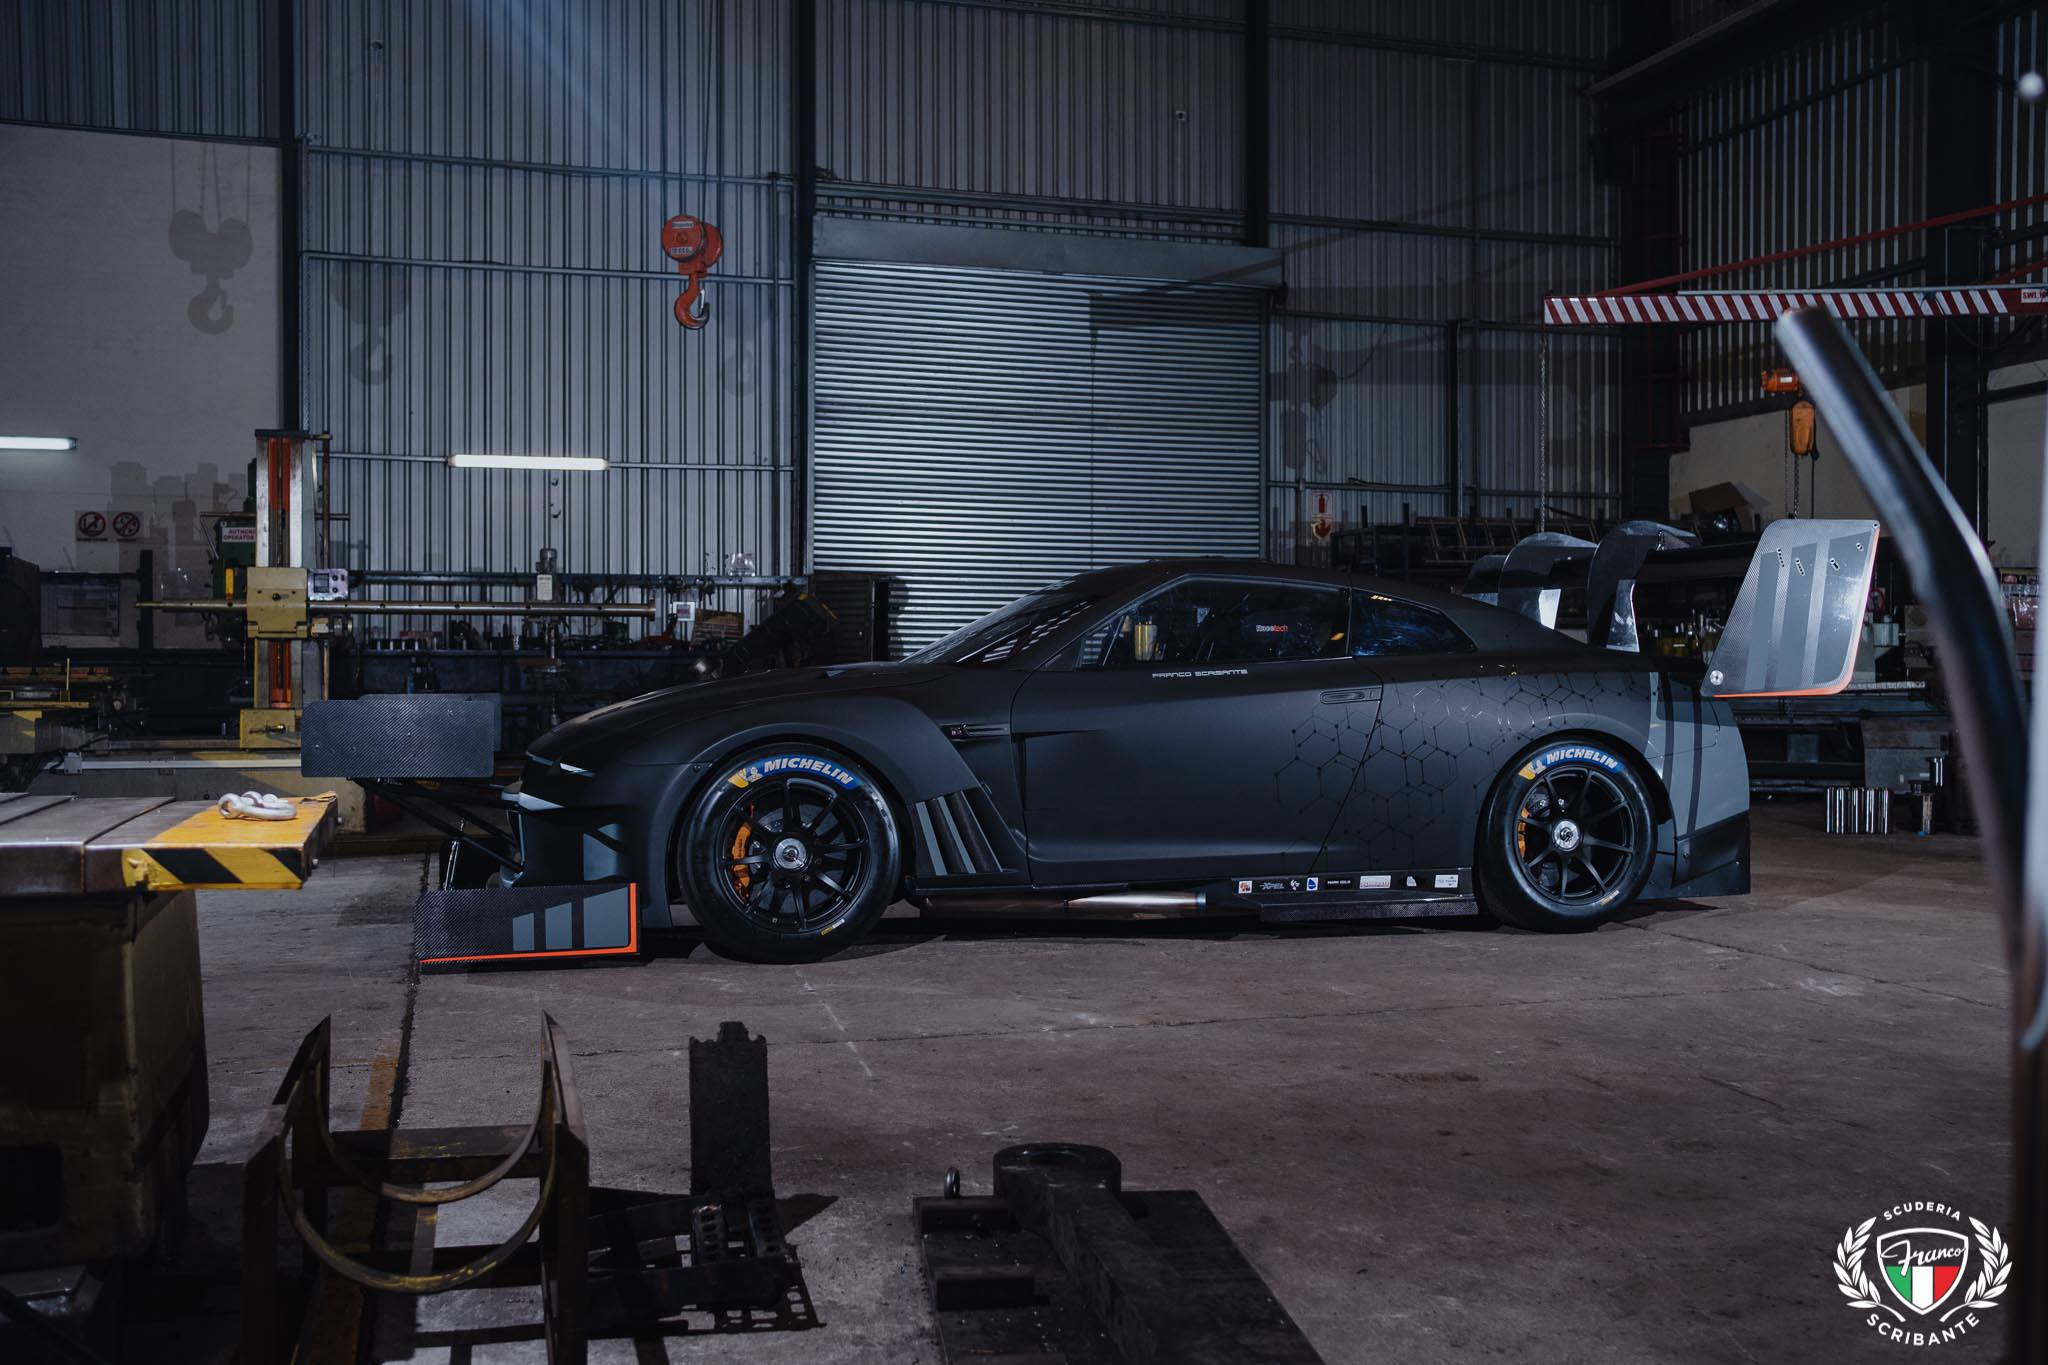 Nissan, GT-R, Spoiler, Wing, car, sport car, need for speed, hill climb, mountain, race, race car, top car, vehicle, fastest car, top fast, engineer, workhouse,